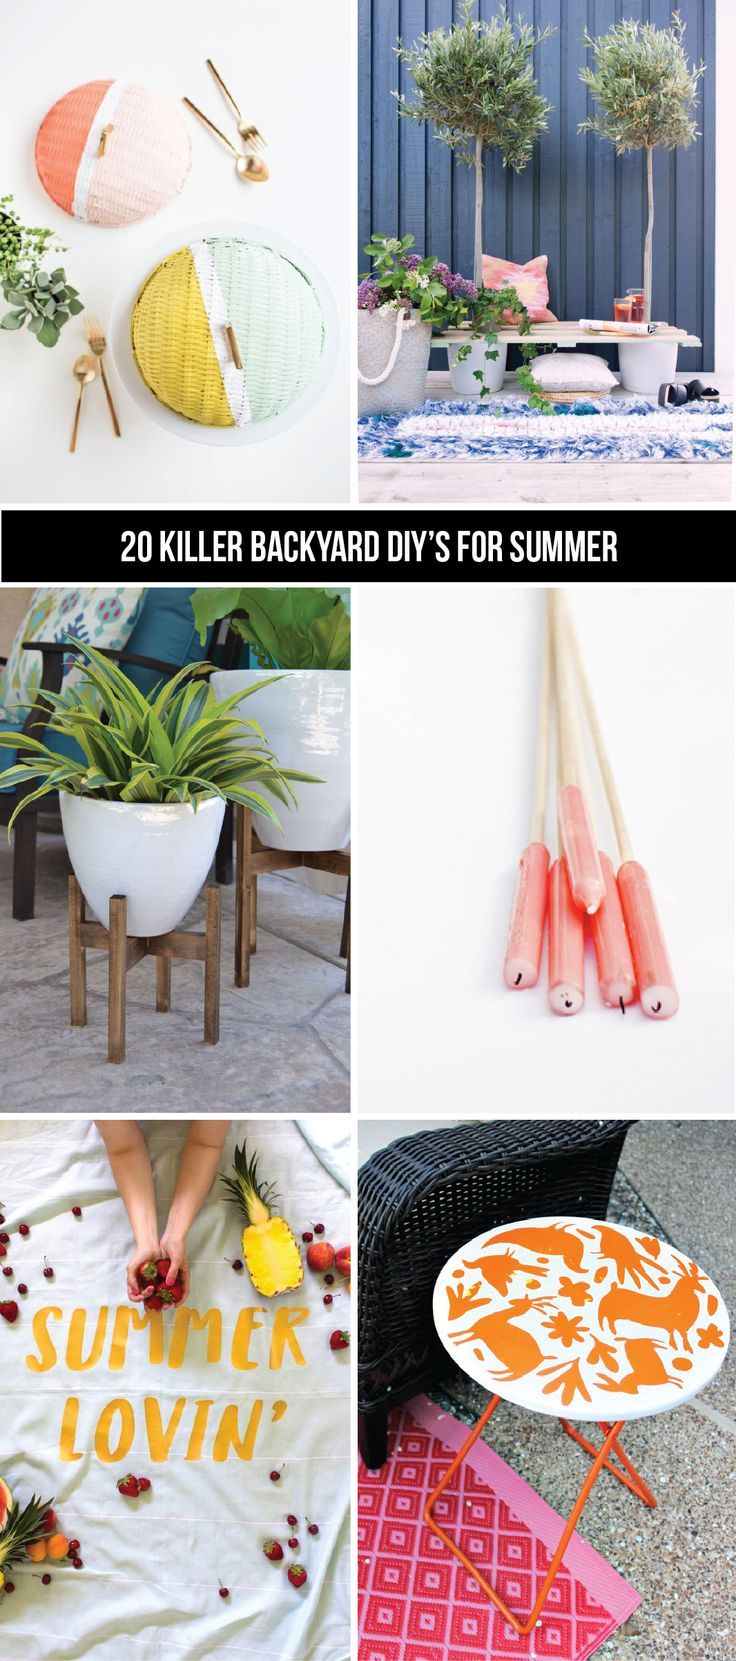 We've rounded up 20 of the best backyard DIY projects to tackle for summer. Click to check them all out!